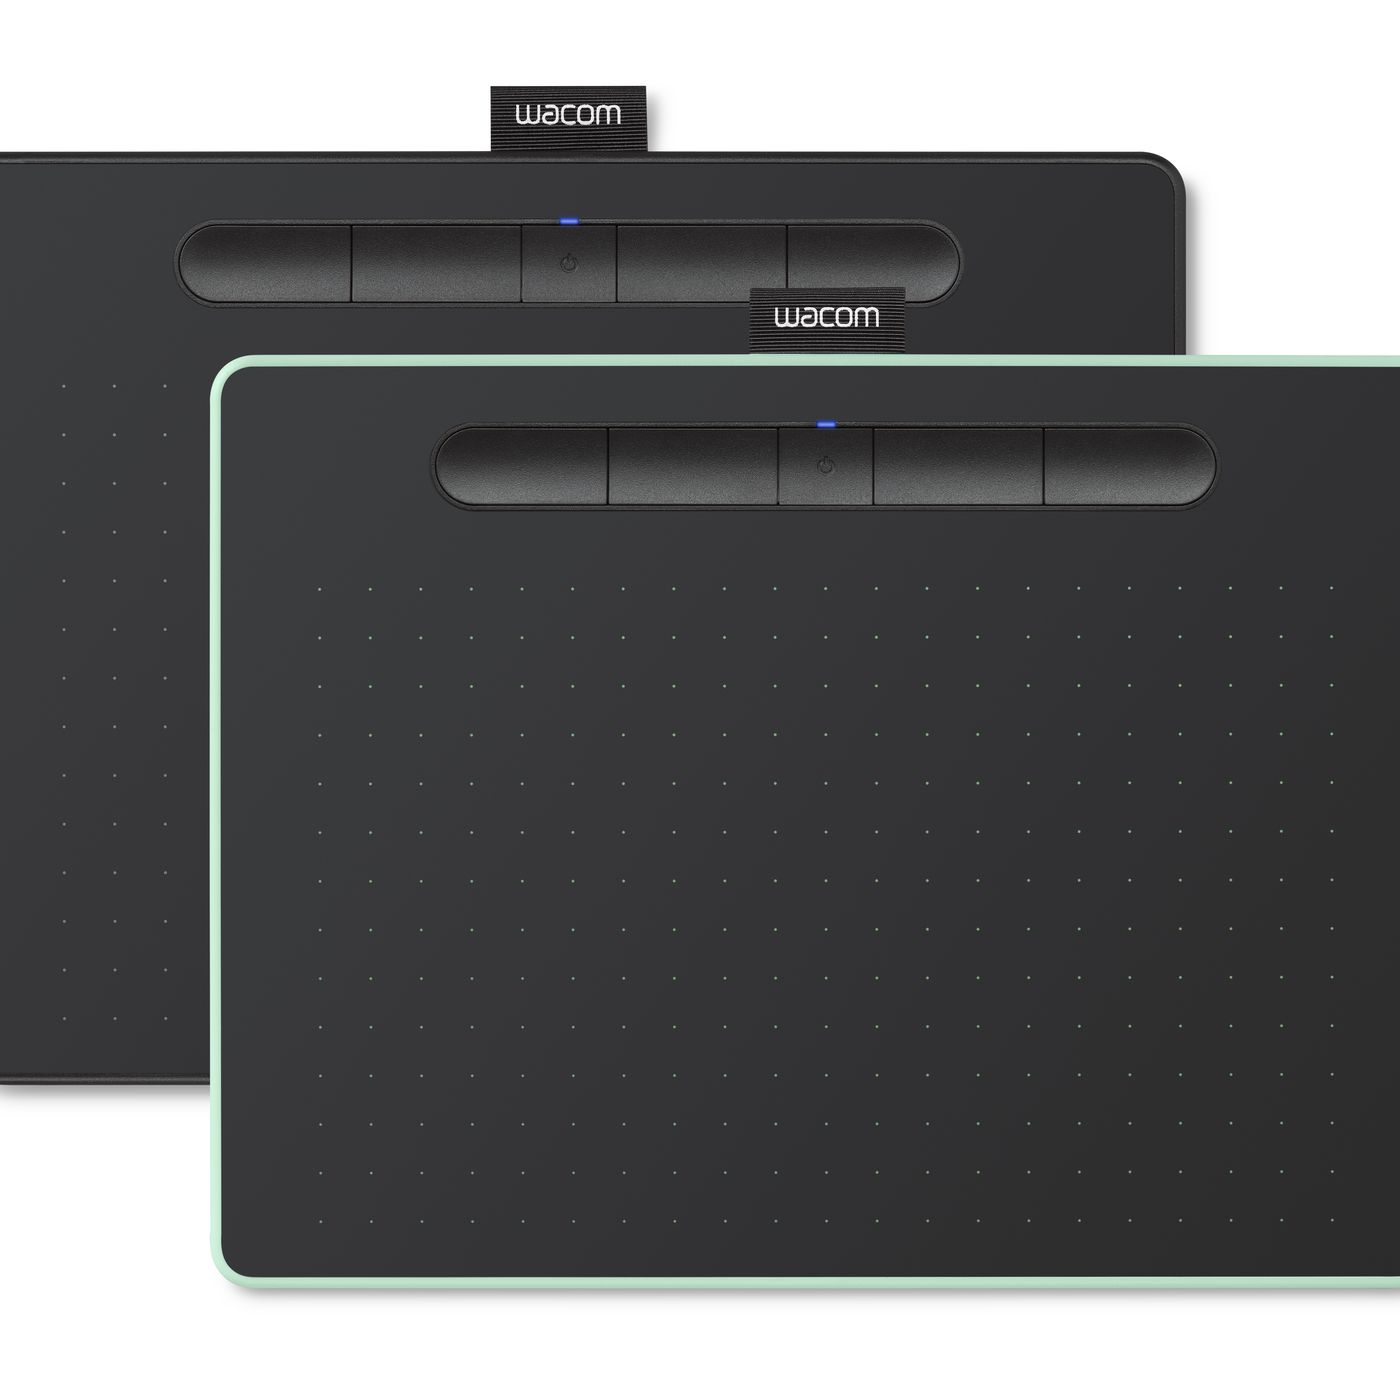 Wacom's new Intuos tablets are perfect for the beginner